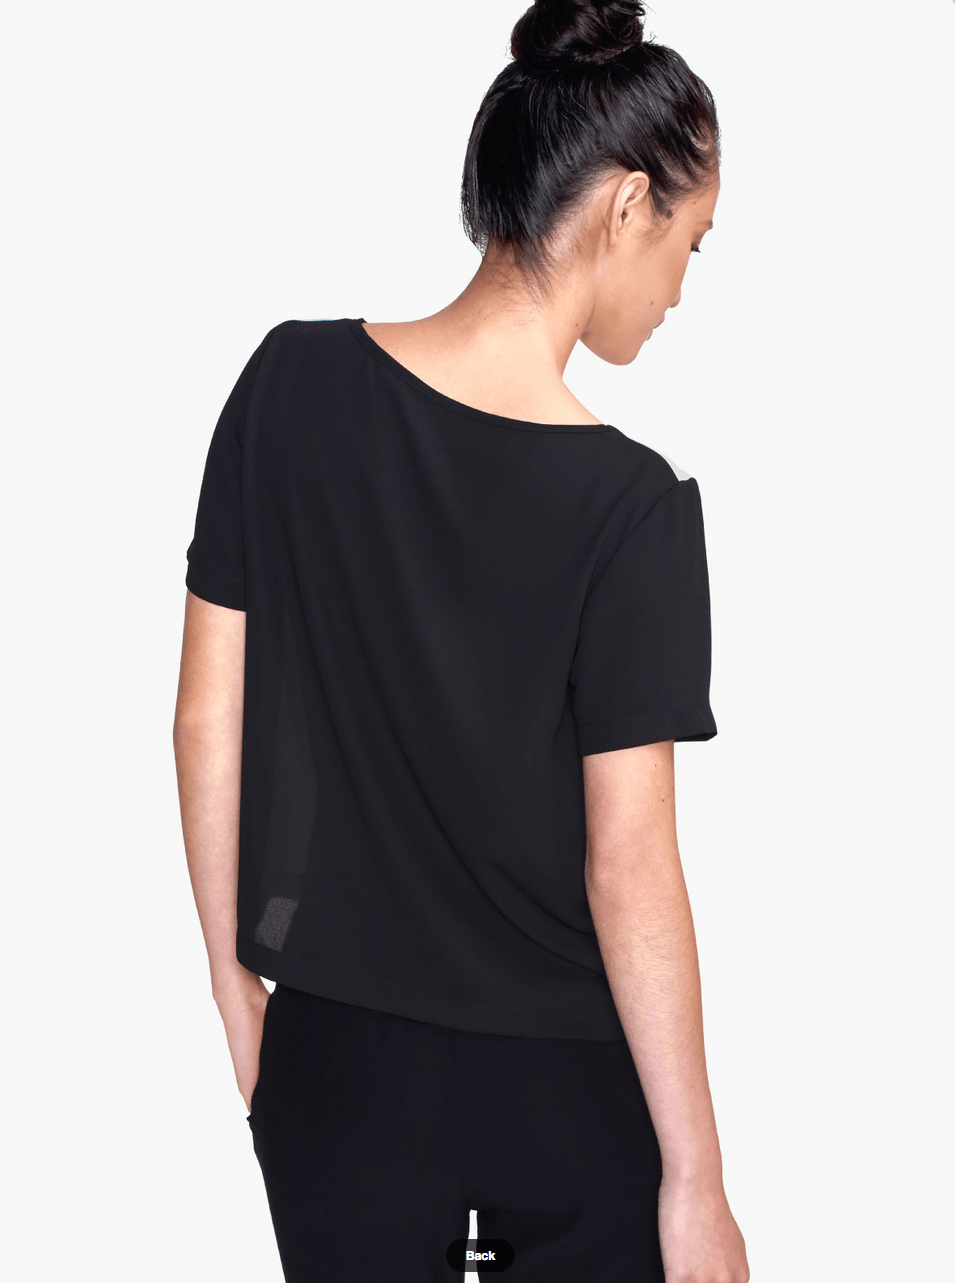 Black and white top - Chiffon Top - Women Blouse - Modern Clothing-TheGretest